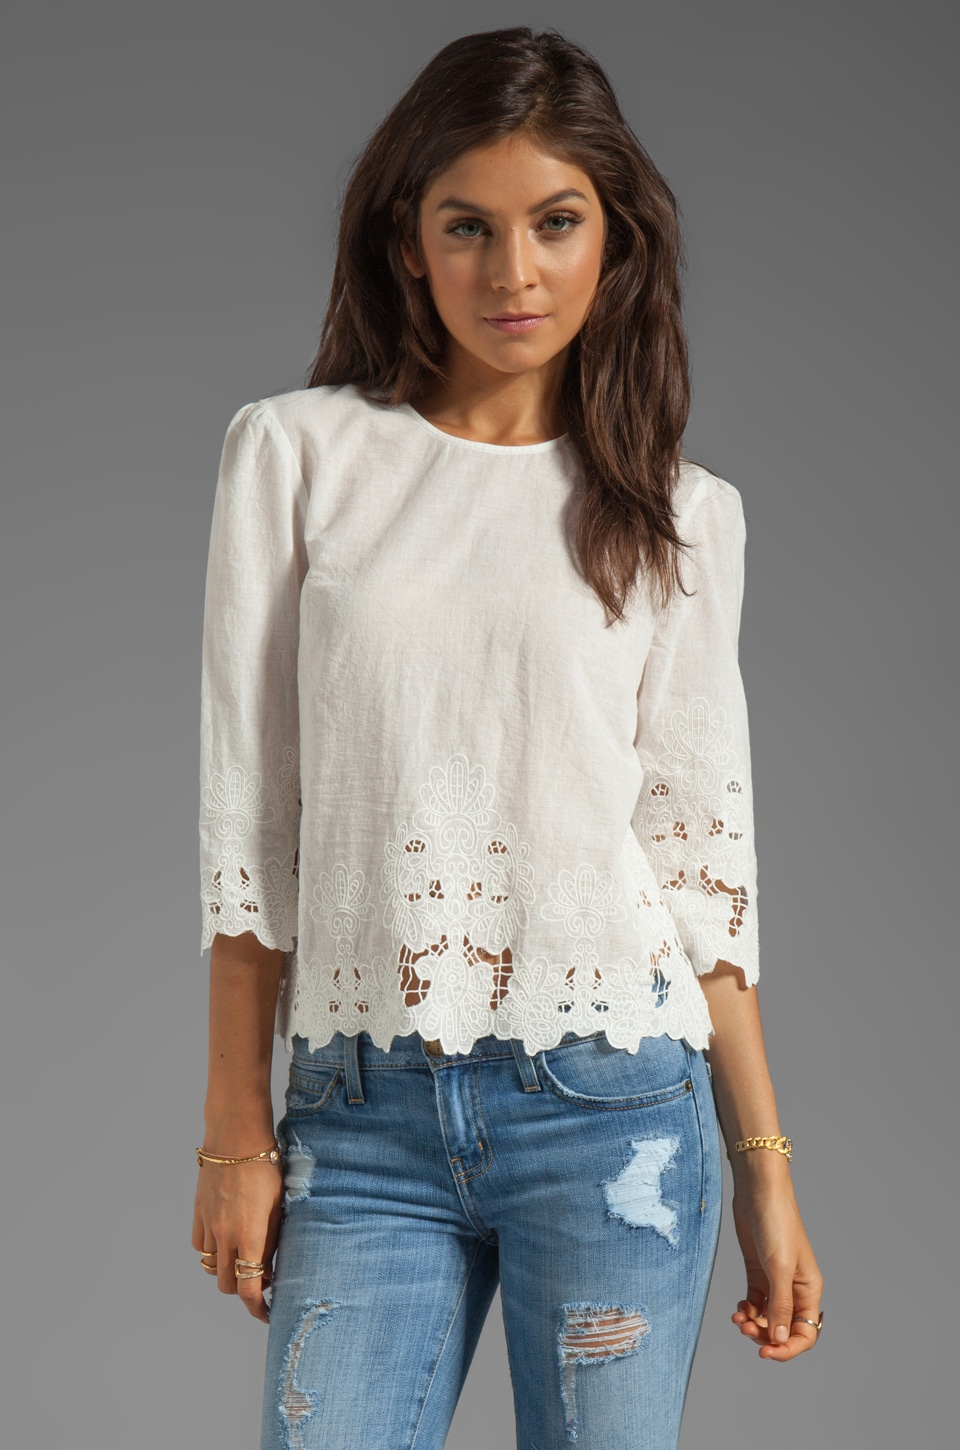 Dolce Vita Deidra Sunflower Lace Top in Frost